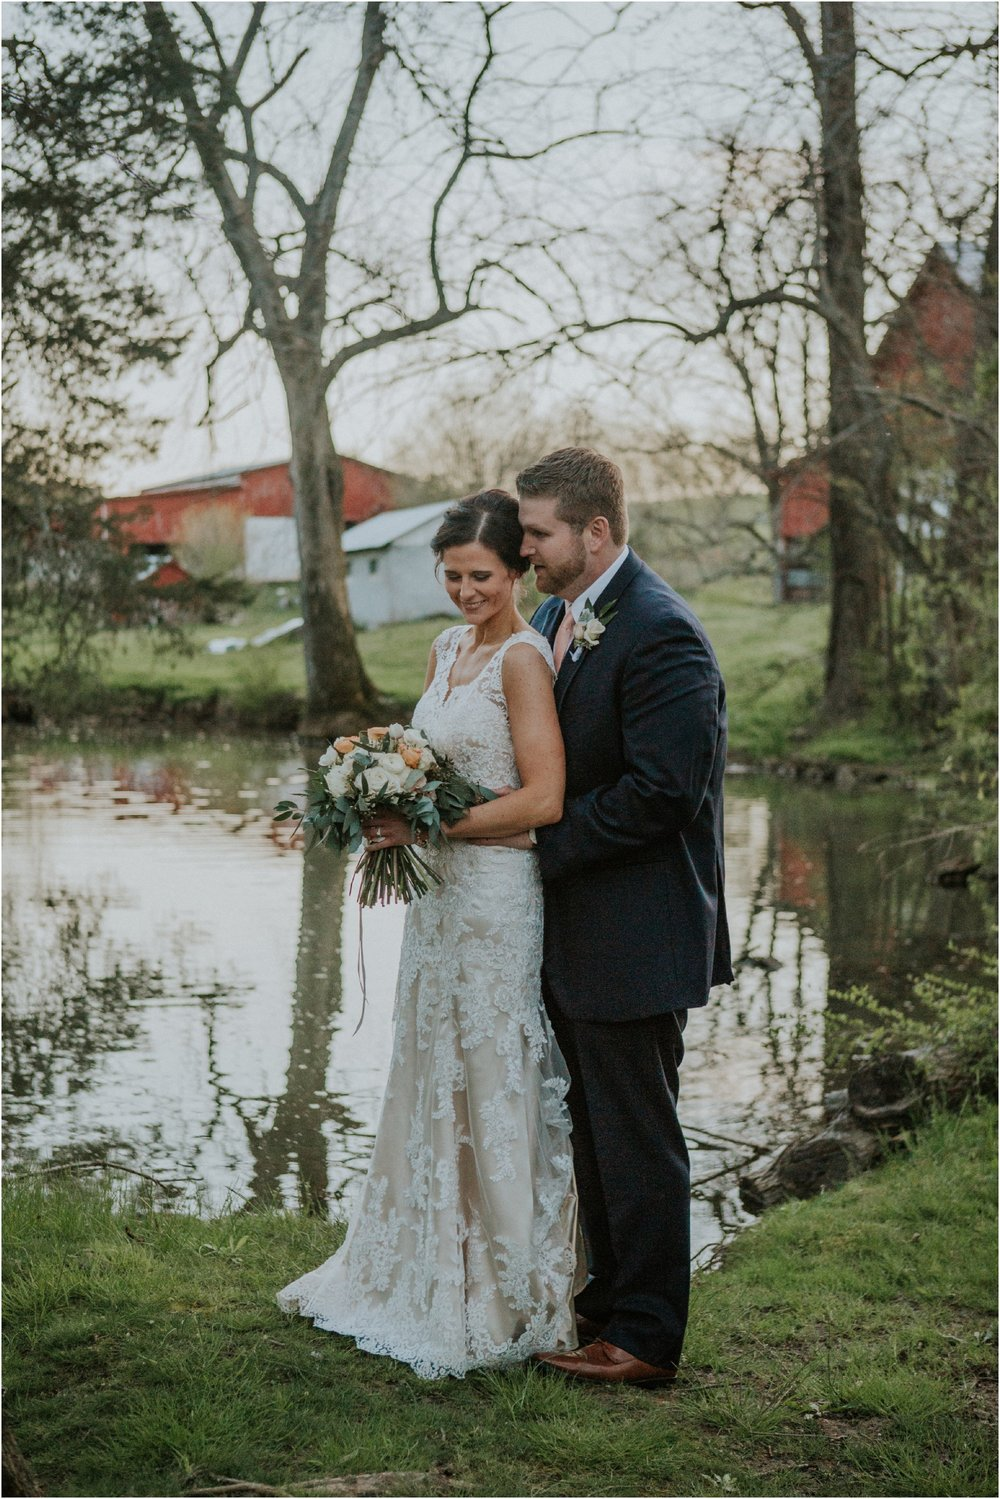 millstone-limestone-tn-tennessee-rustic-outdoors-pastel-lodge-cabin-venue-wedding-katy-sergent-photographer_0183.jpg